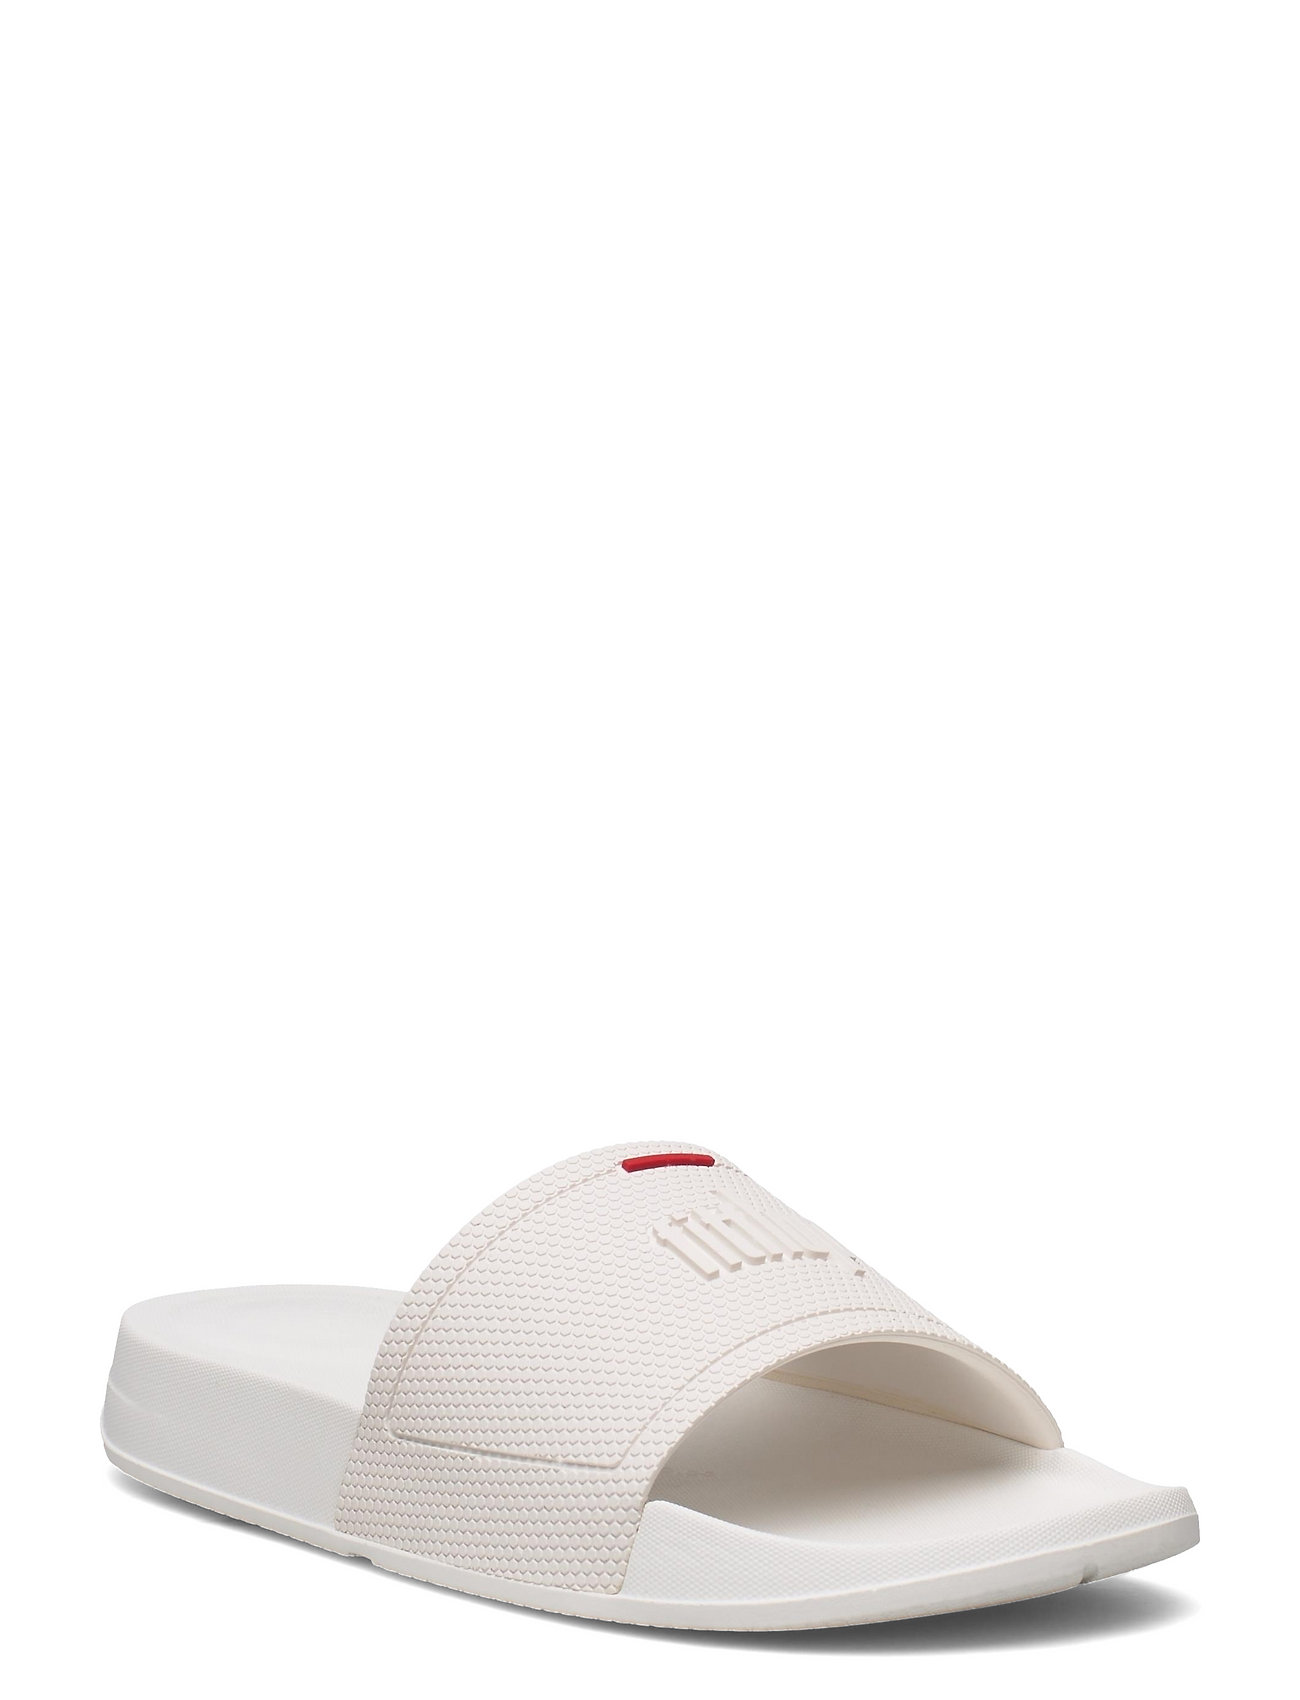 Iqushion Slides Shoes Summer Shoes Pool Sliders Hvid FitFlop